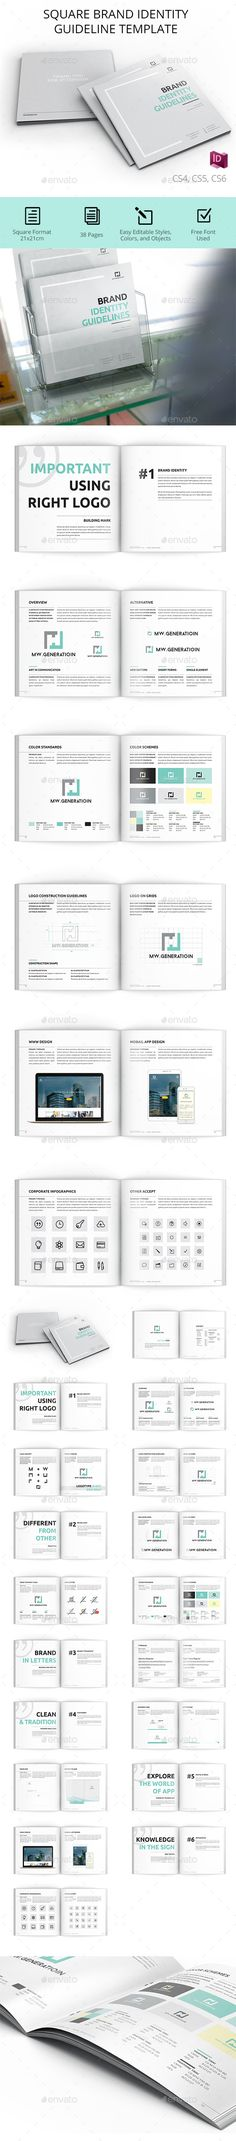 Brand Manual Template Indesign Indd - 48 Pages, A4 | Diseño